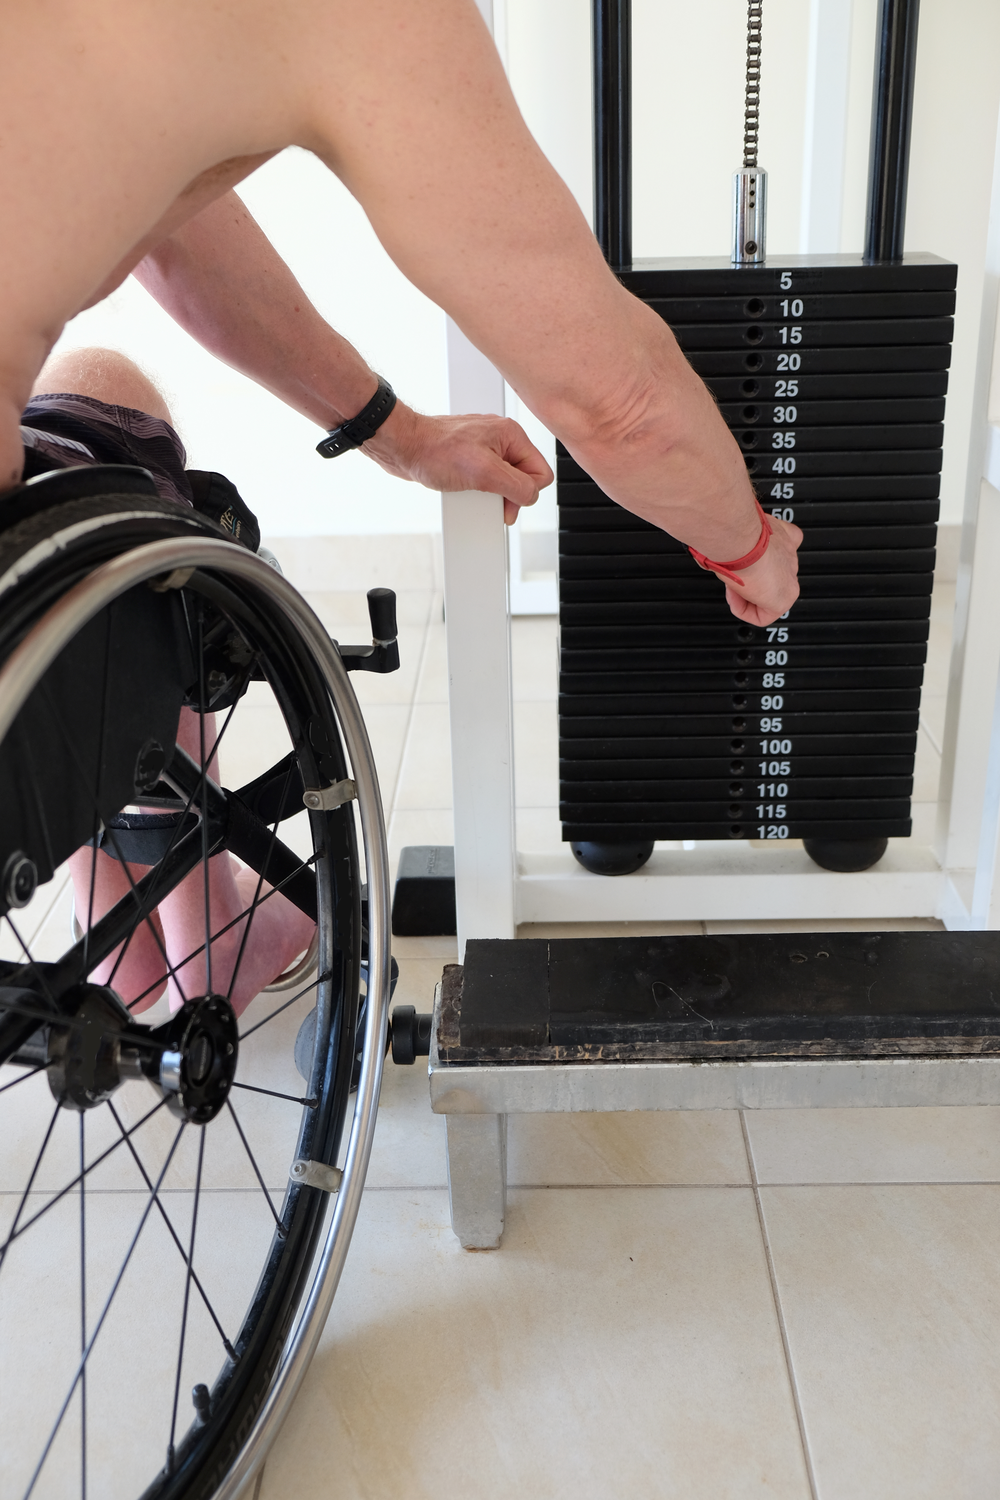 Man in a wheelchair adjusts his weight on a piece of workout equipment